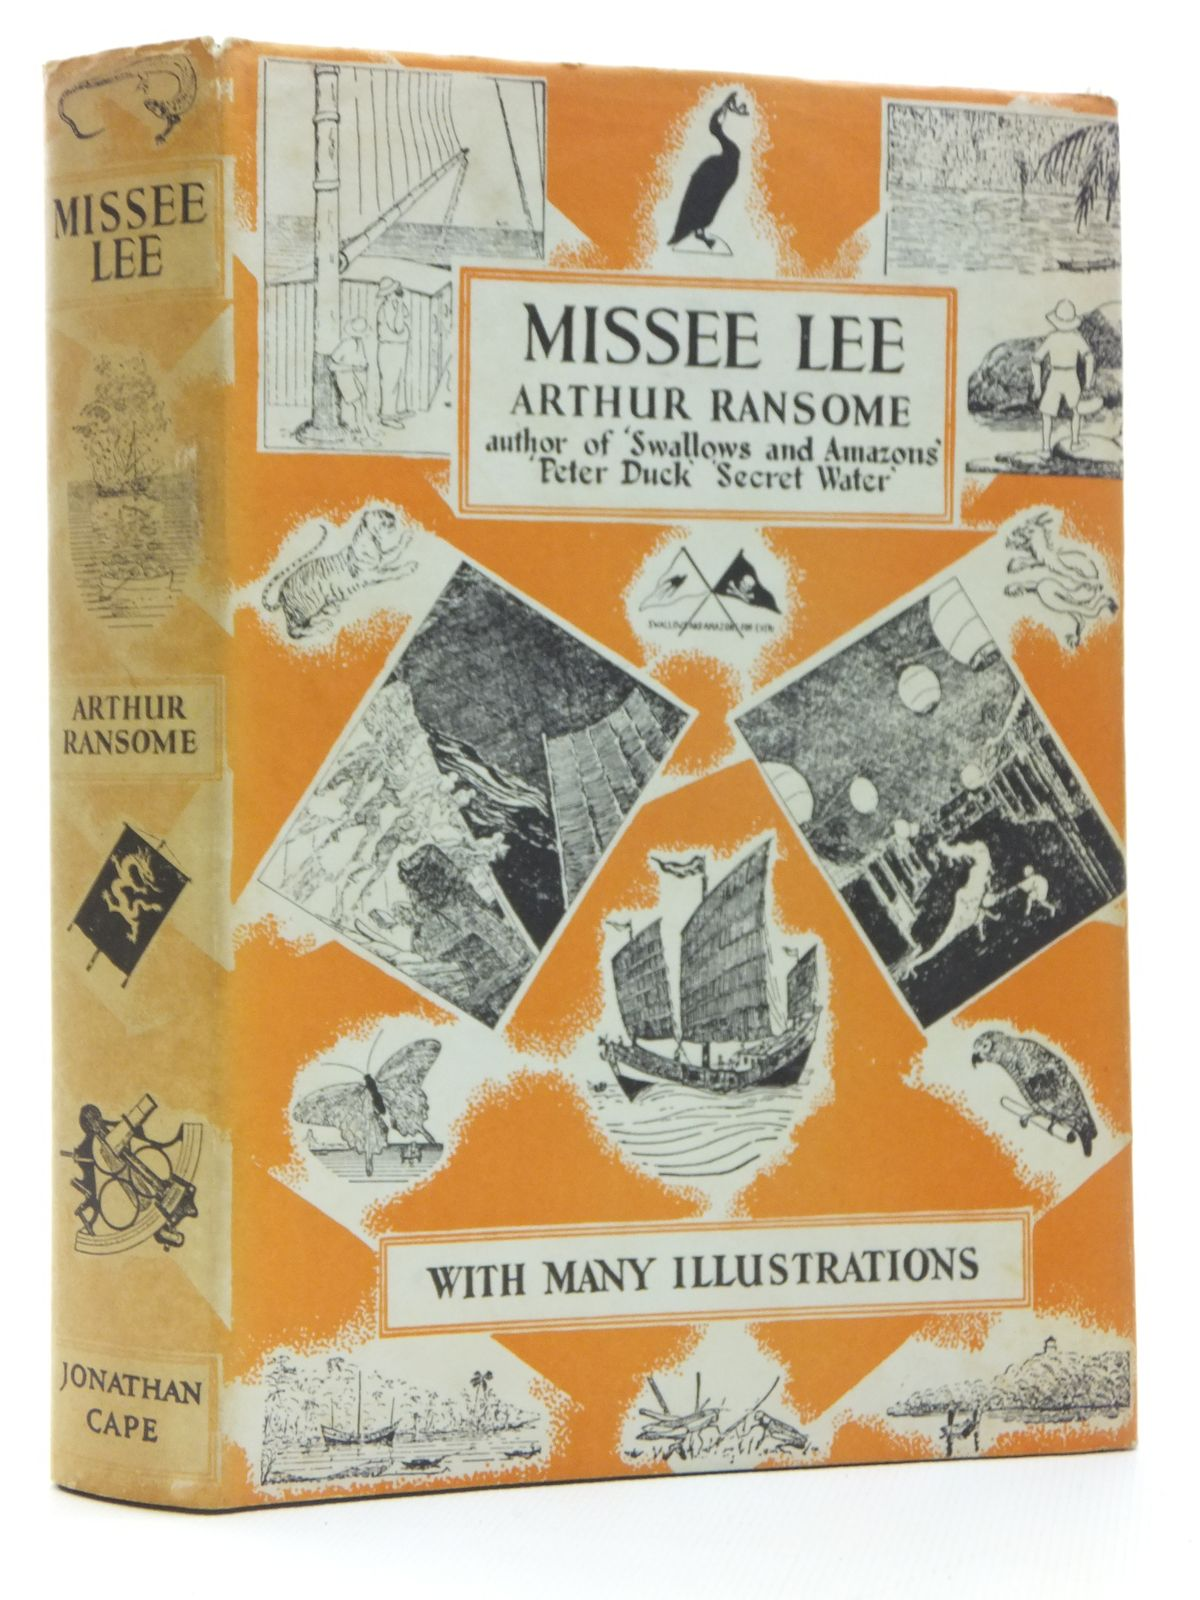 Swallows And Amazons By Arthur Ransome Featured Books border=